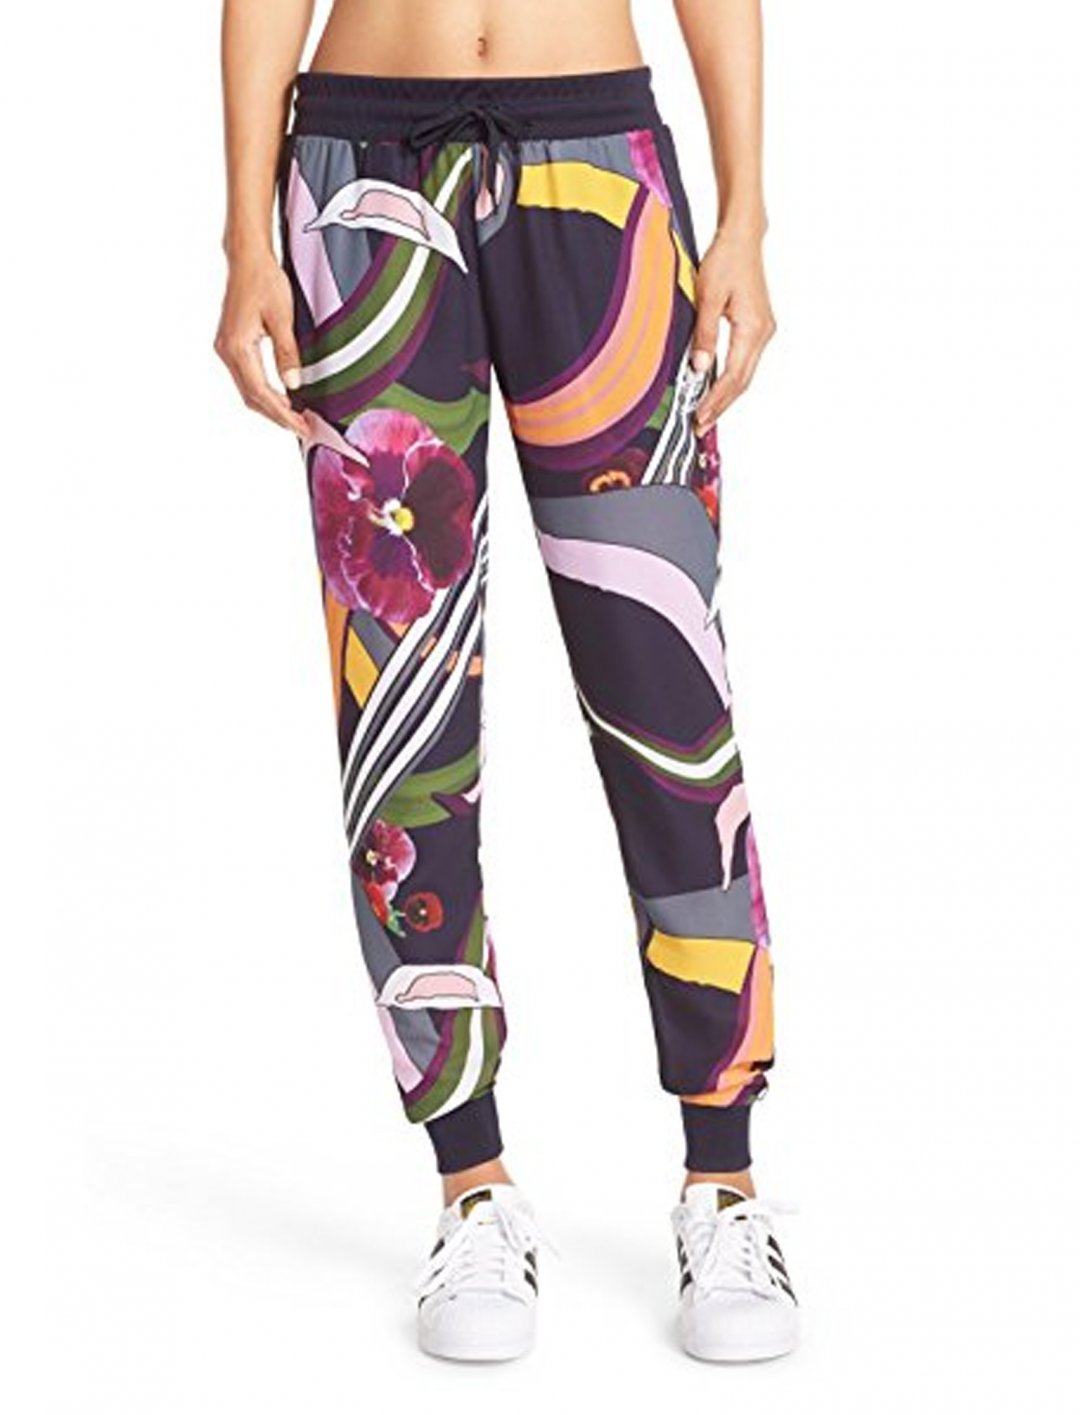 """Adidas Jogging Pants {""""id"""":5,""""product_section_id"""":1,""""name"""":""""Clothing"""",""""order"""":5} Adidas"""